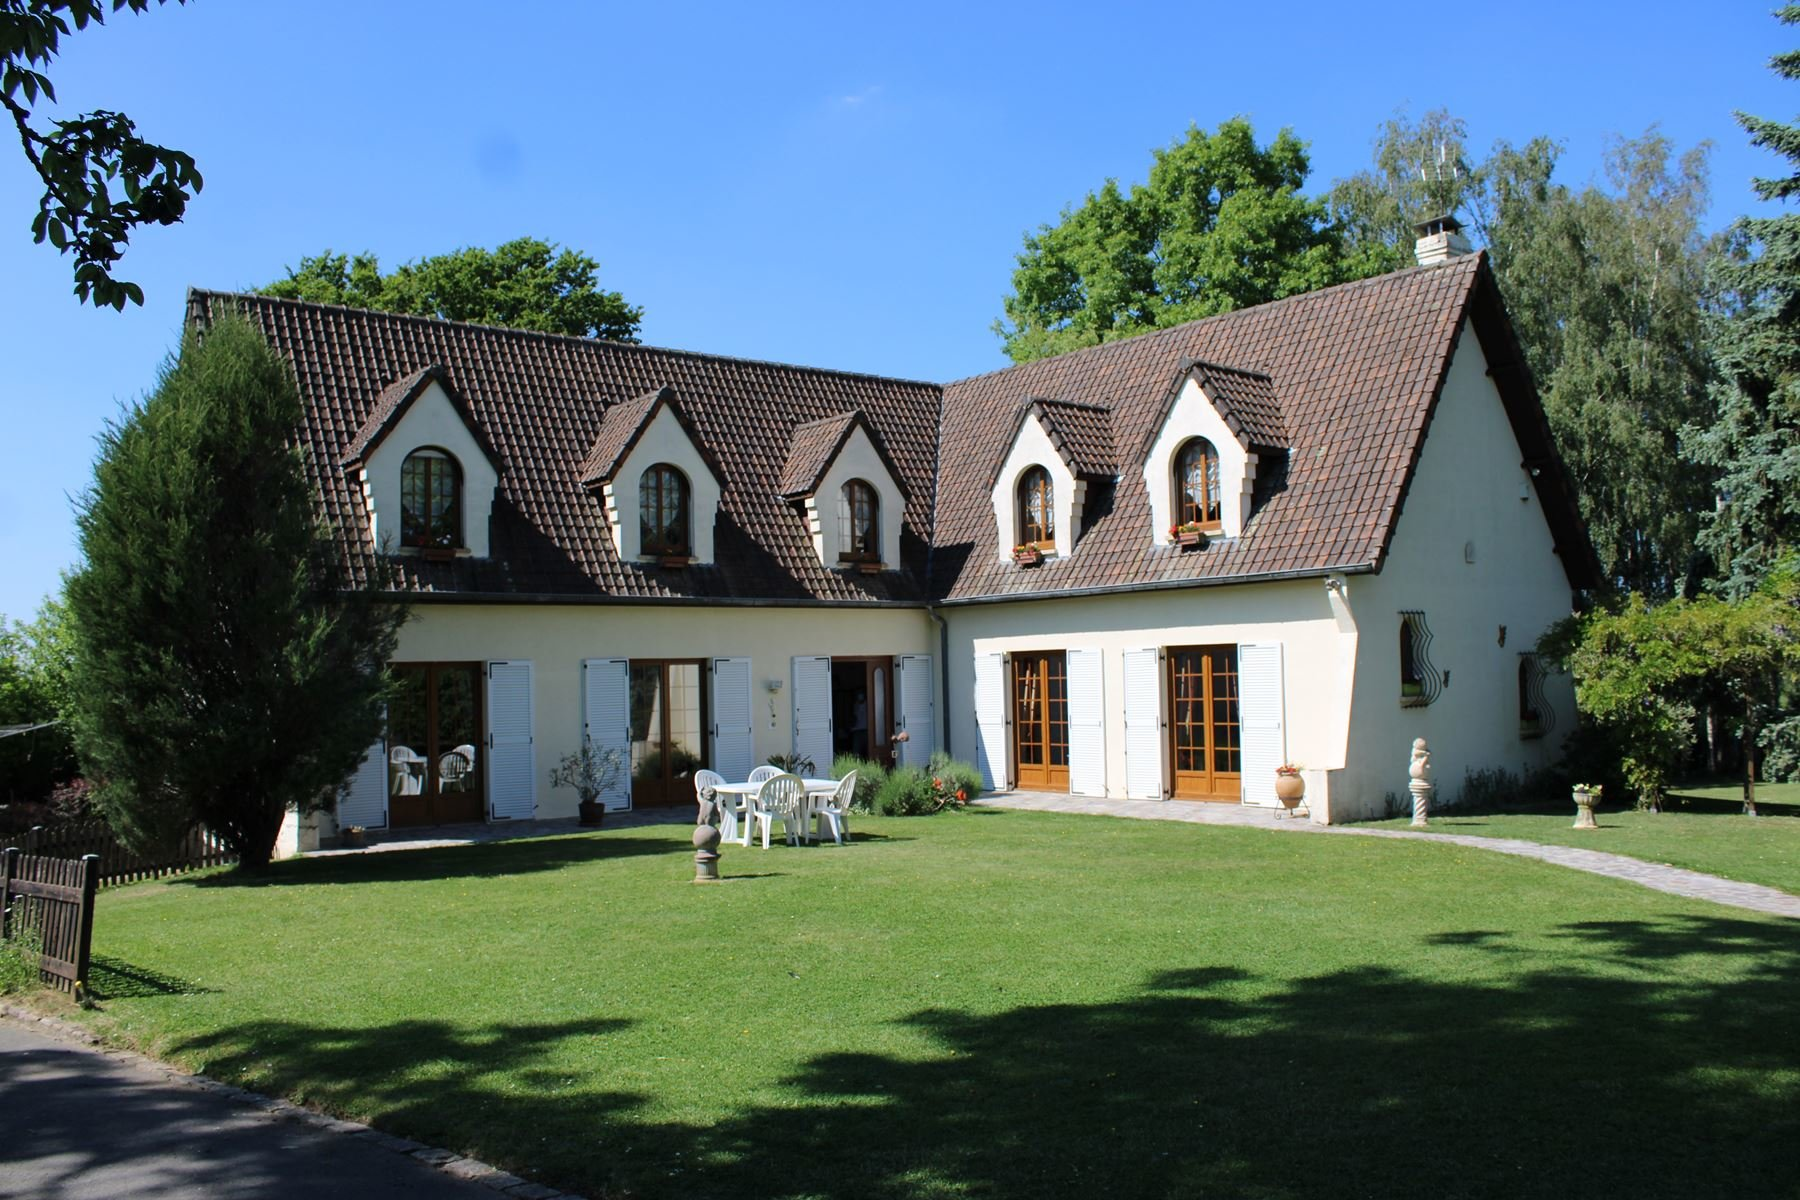 Villa - AXE FOURMIES AVESNES